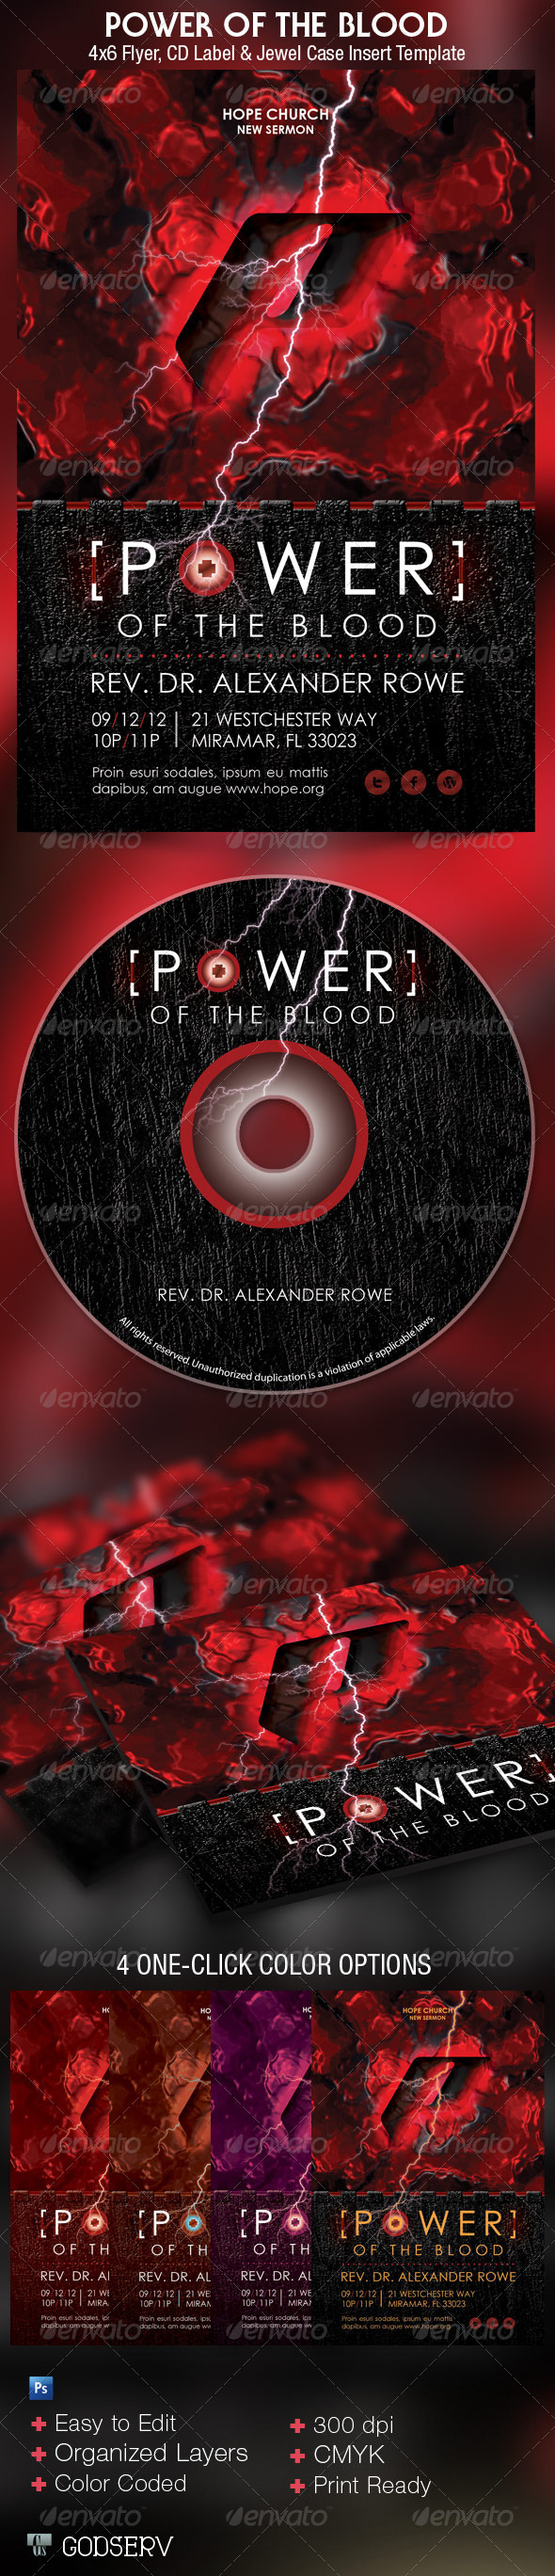 Power of The Blood Church Flyer and CD Template - Church Flyers